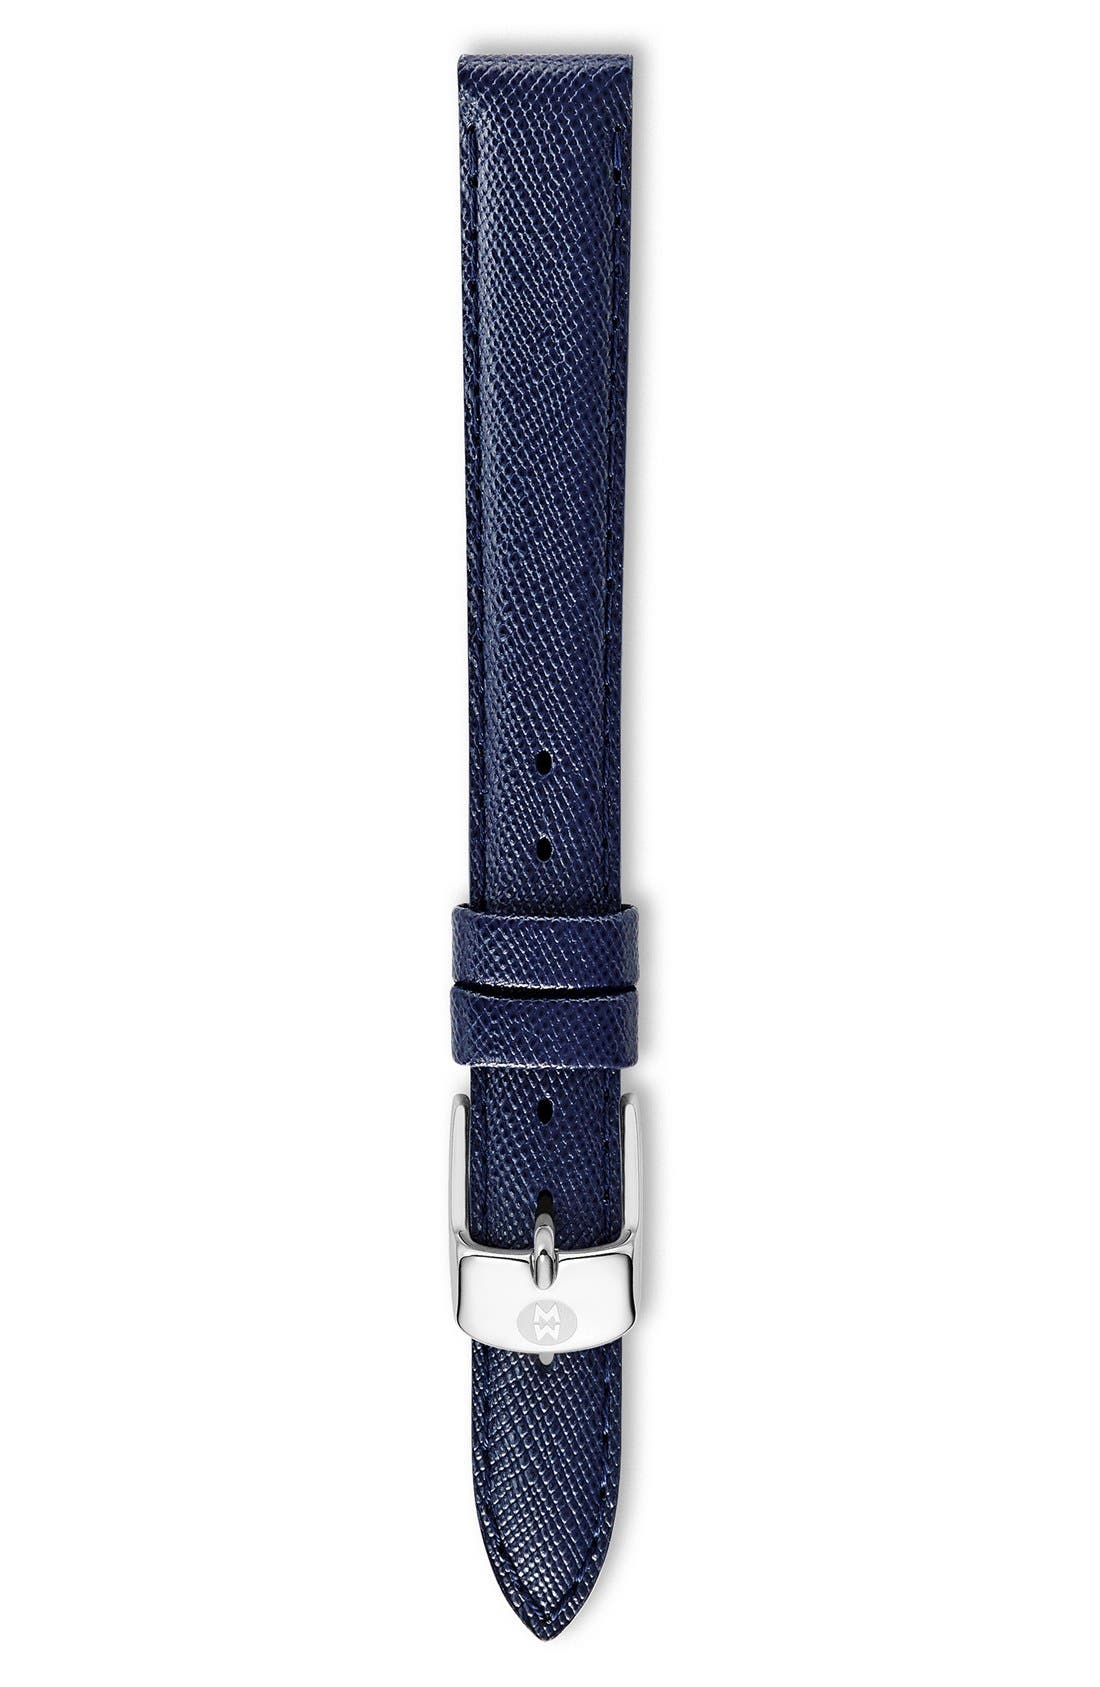 Main Image - MICHELE 12mm Saffiano Leather Watch Strap